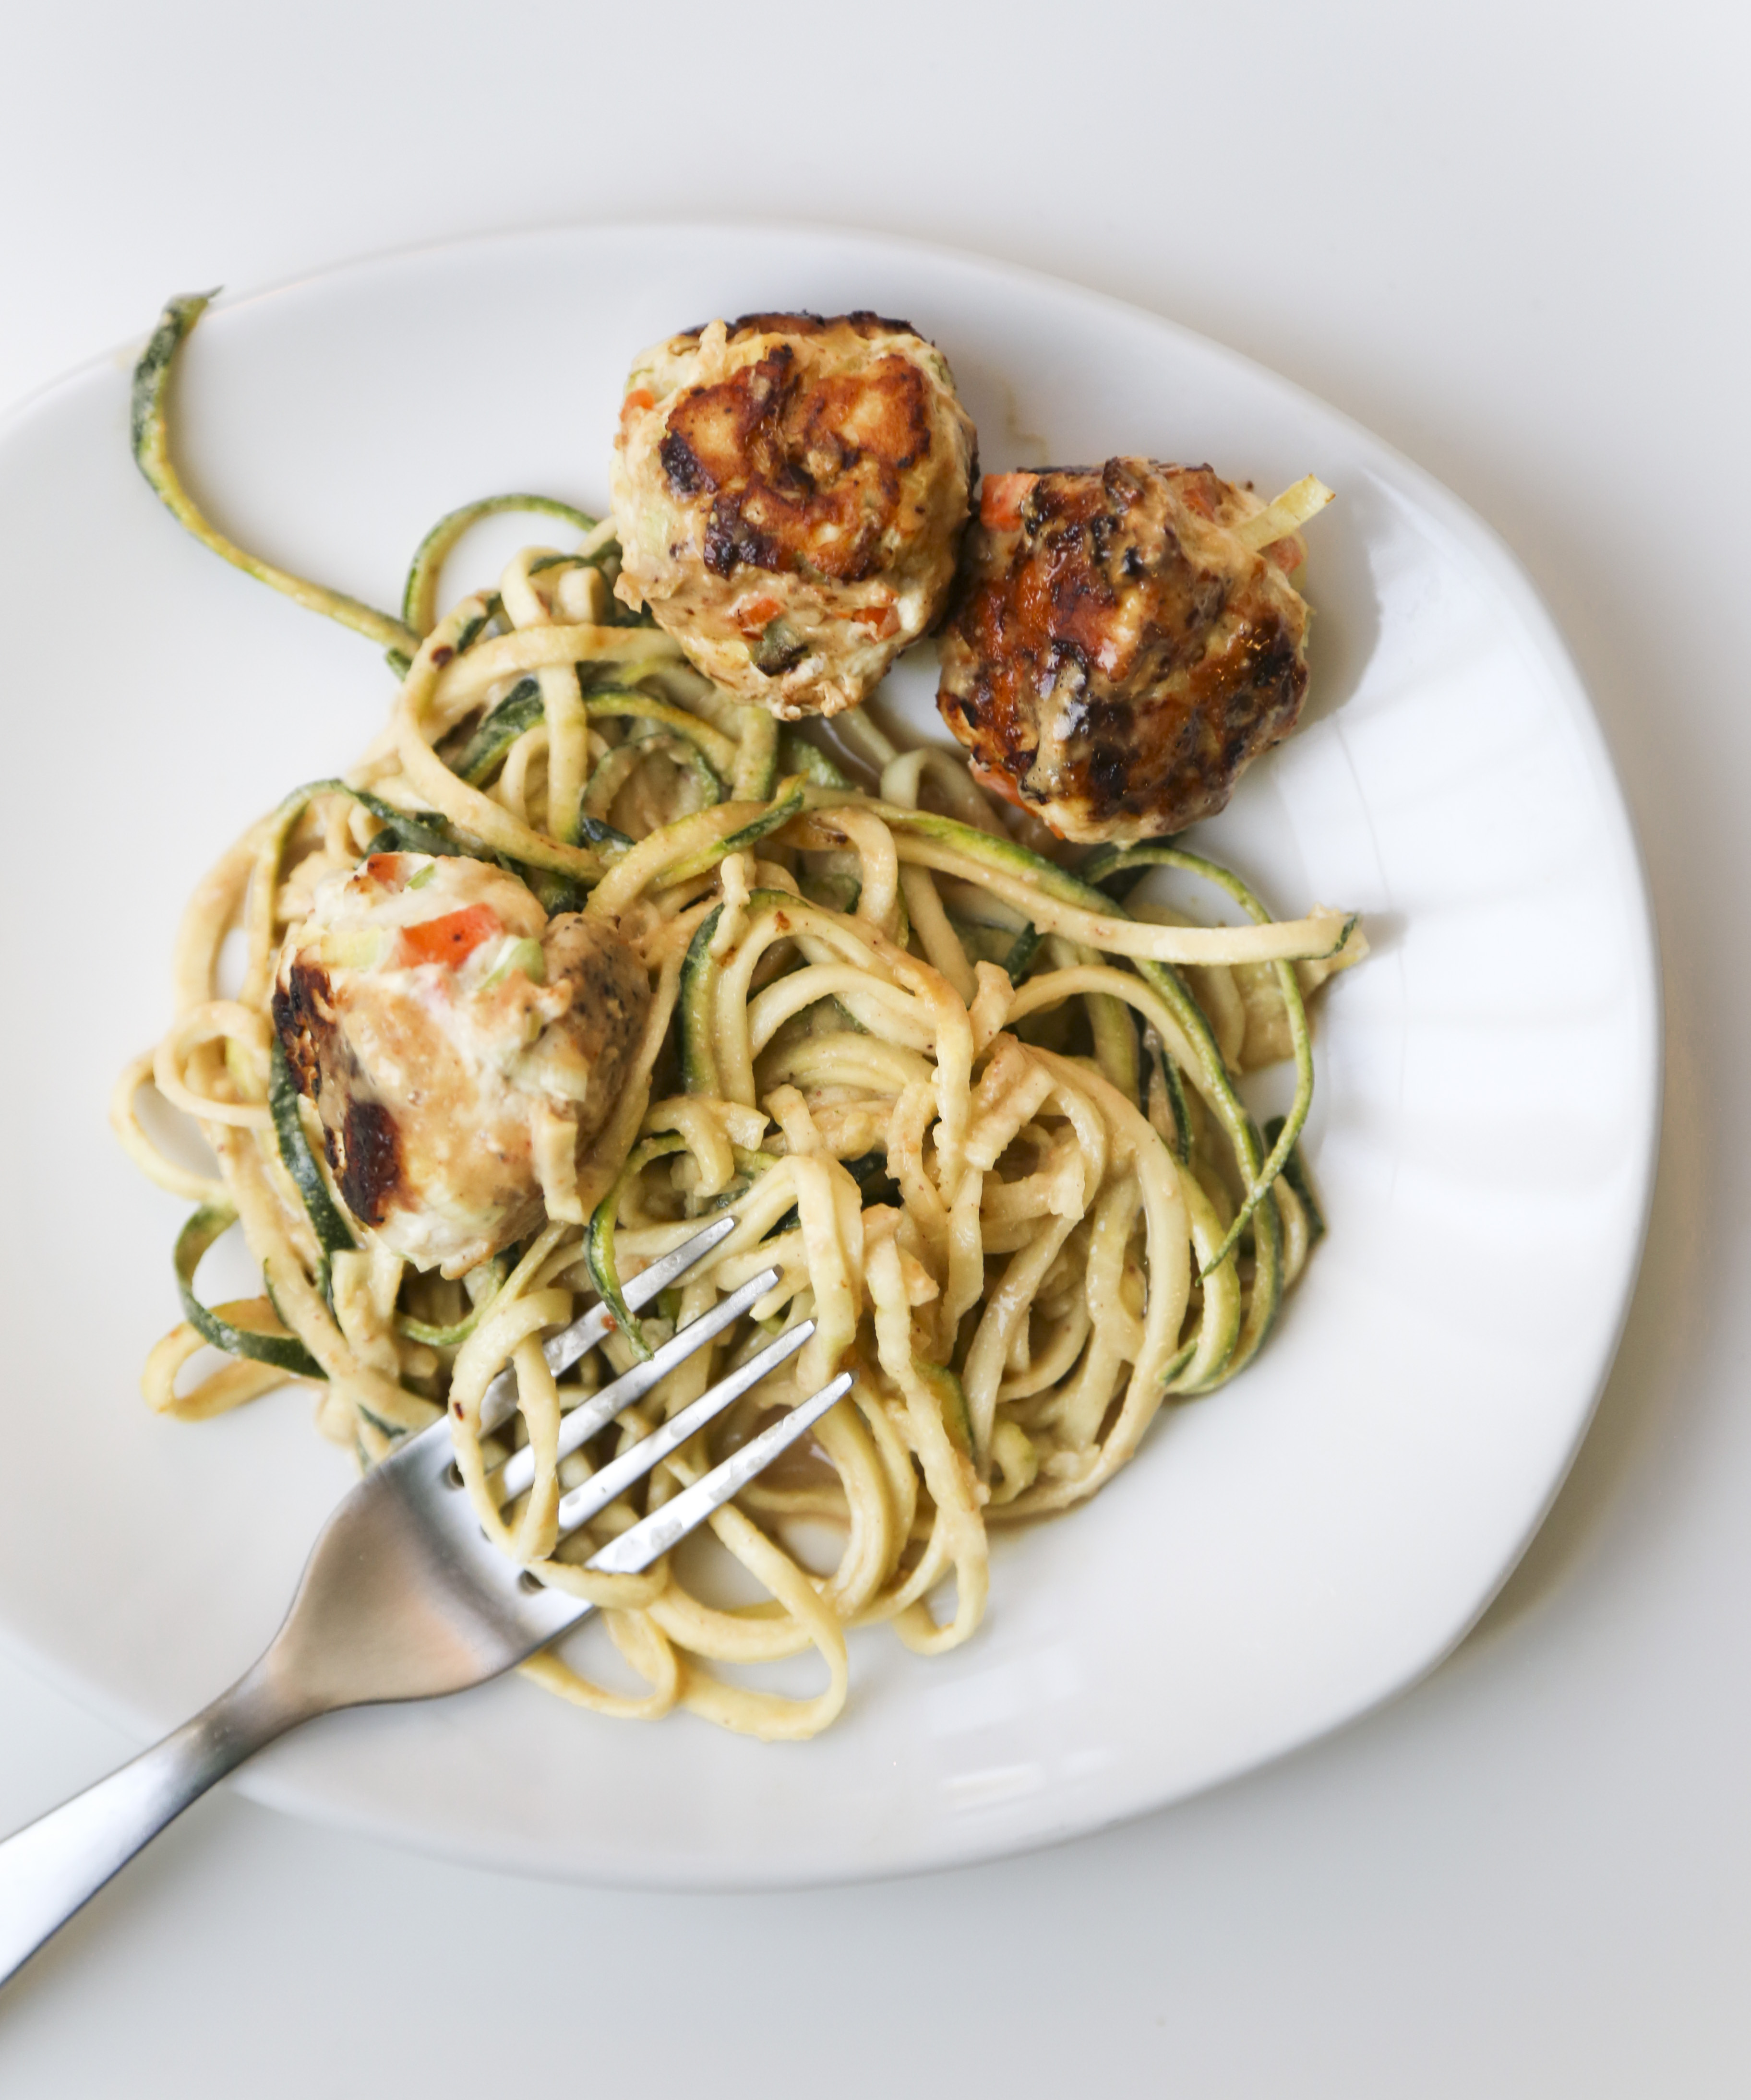 Zucchini noodles with peanut sauce and leek y meatballs for Zucchini noodles and meatballs recipe